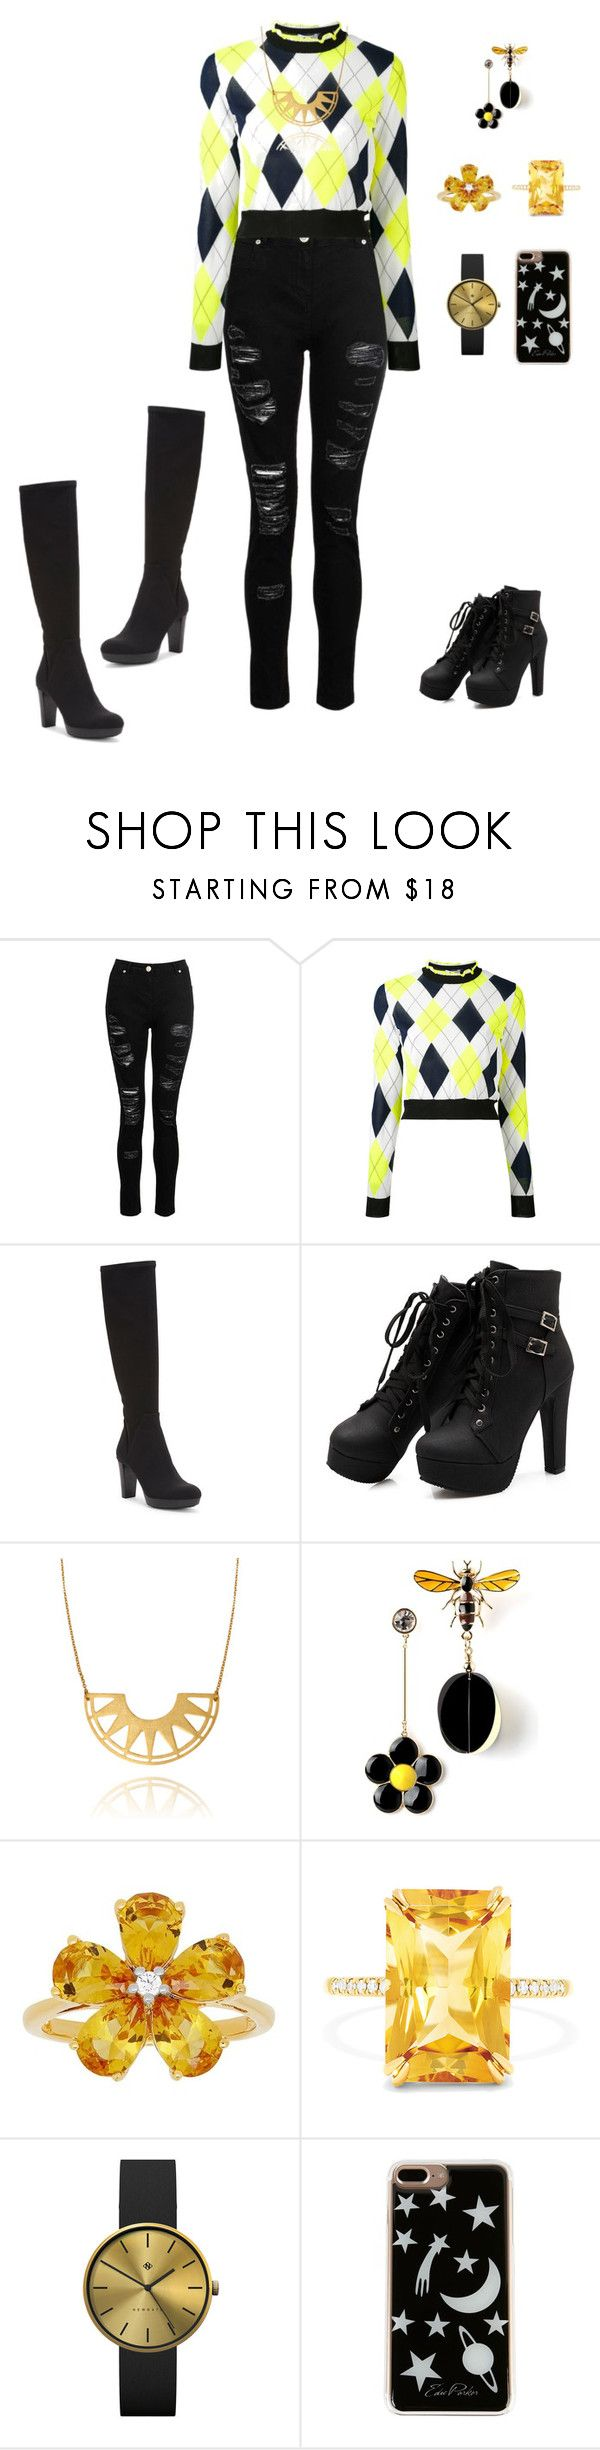 """""""Sem título #40"""" by ren-emily ❤ liked on Polyvore featuring Dorothy Perkins, MSGM, Donald J Pliner, David Tutera, Effy Jewelry, Newgate and Edie Parker"""